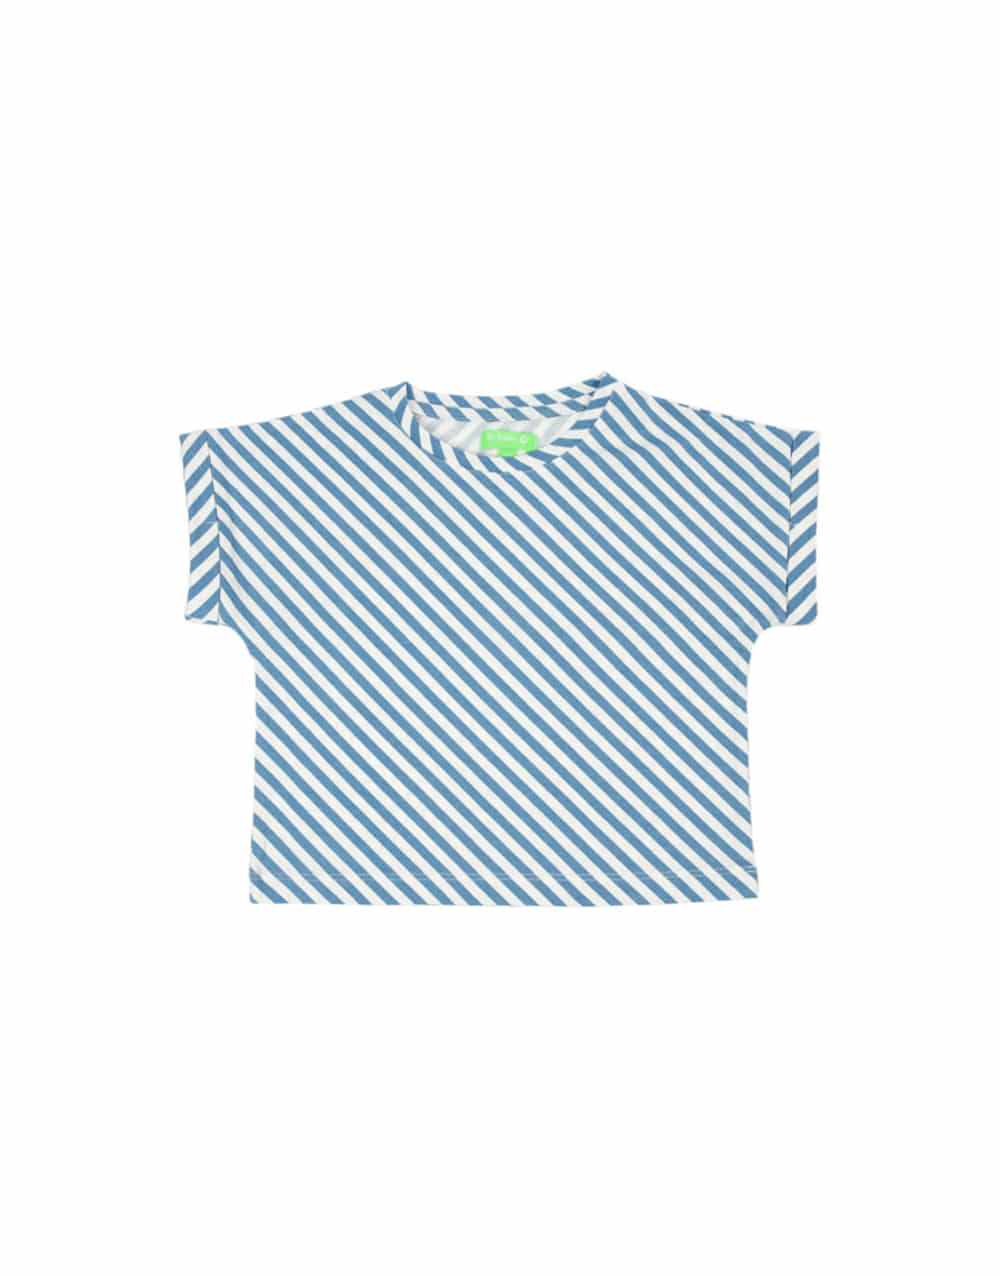 LILY BALOU   Fenna T-shirt   Diagonal Stripes